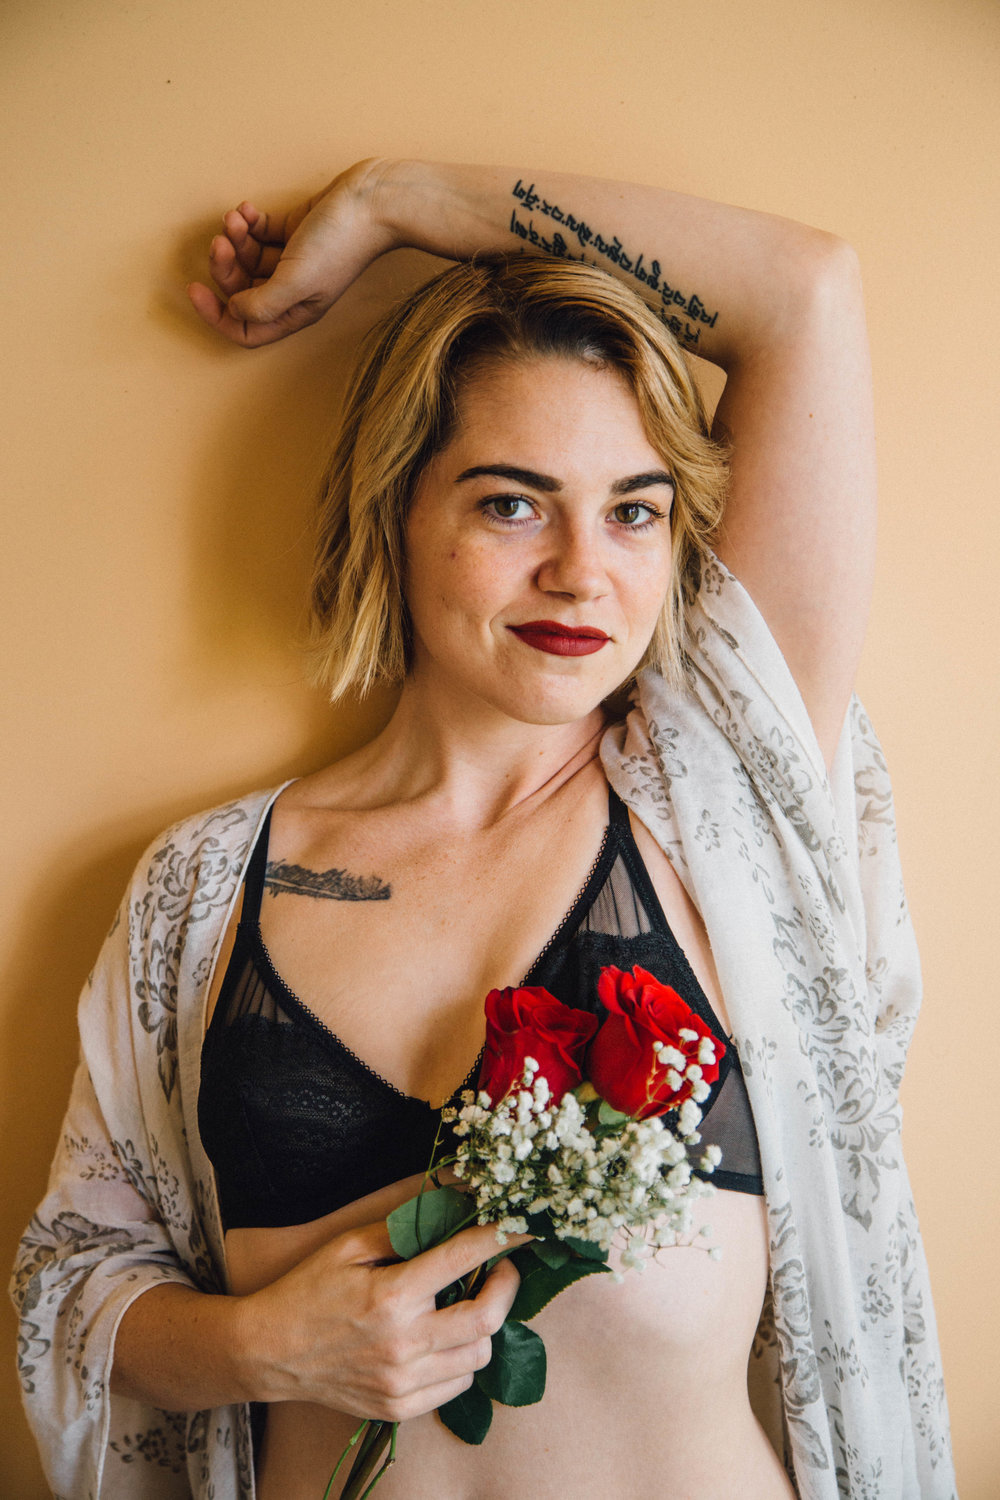 meet tiffani - Tiffani Purdy is a Radical Self-Love Embodiment Mentor & Facilitator. She is here to compassionately hold space for you & show you a new way of life.